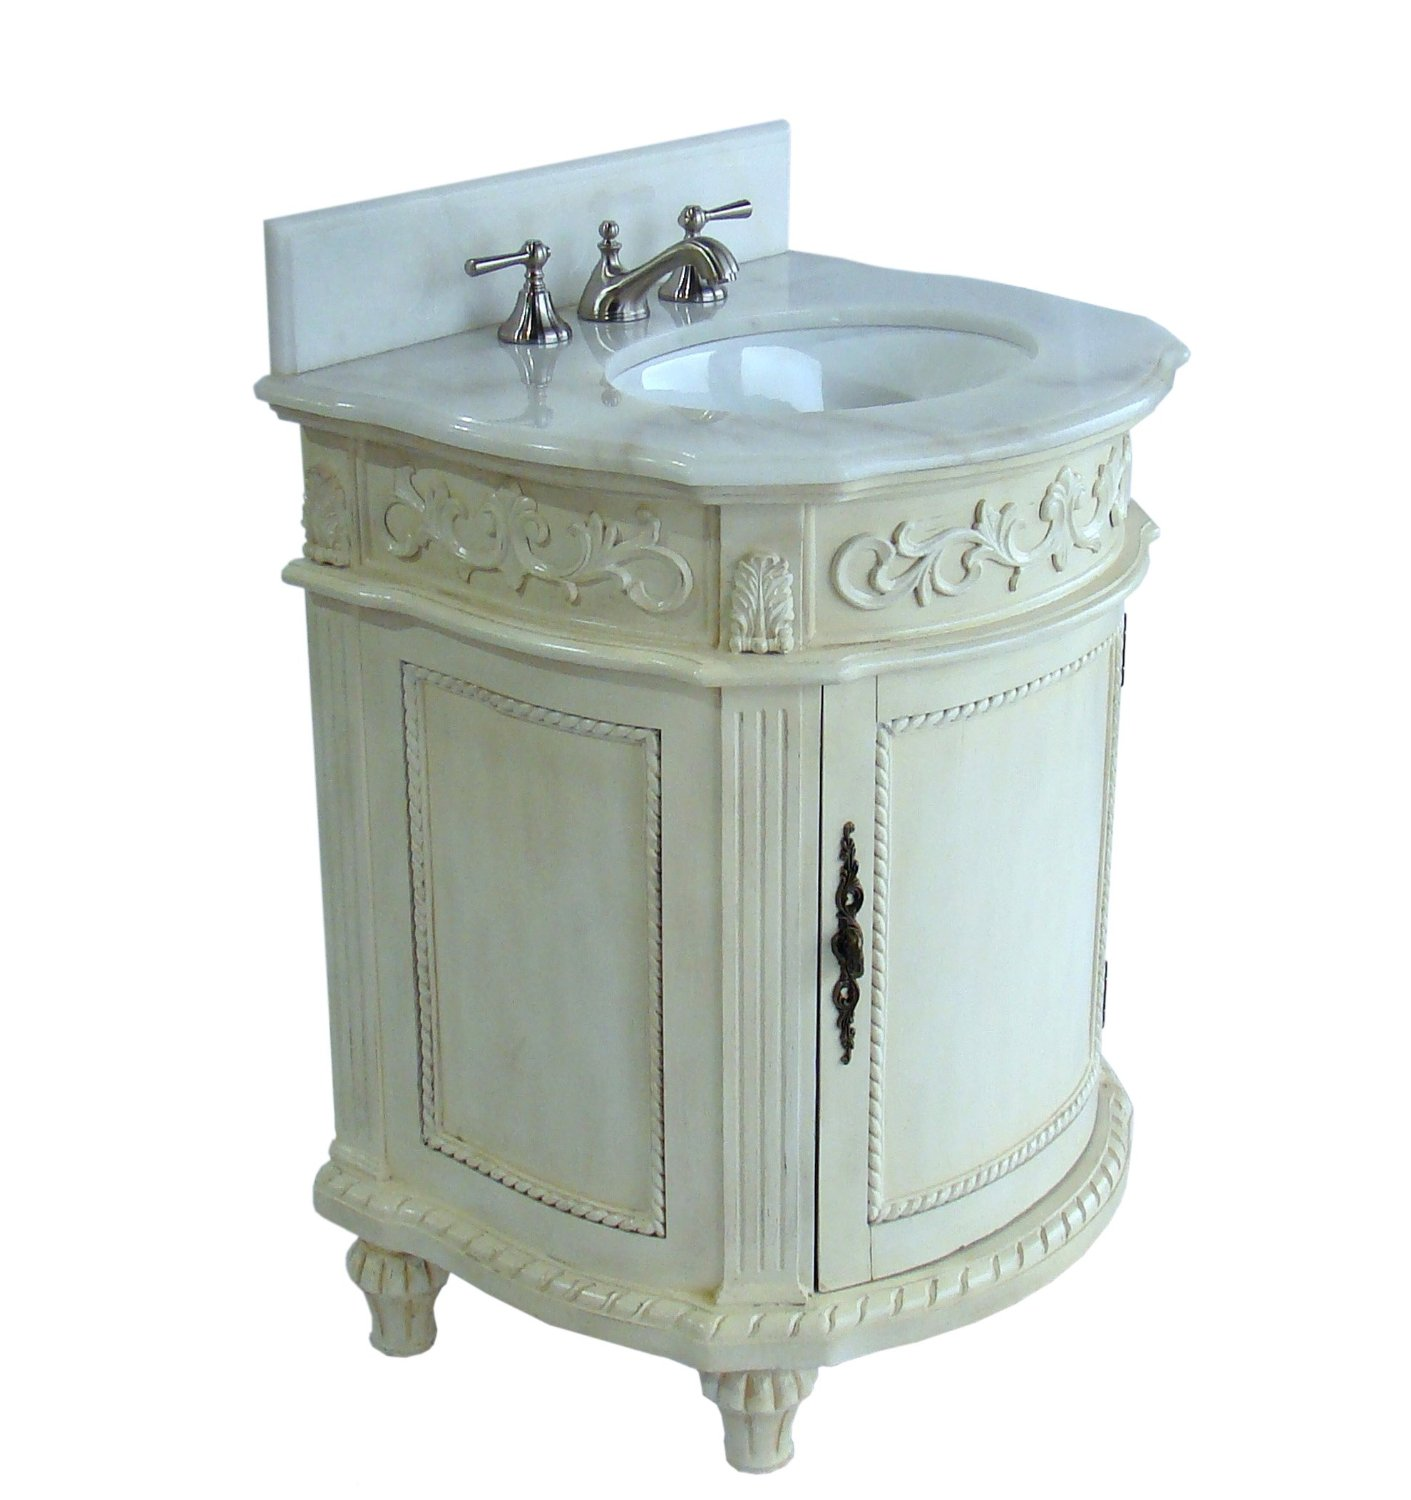 Antique White Bathroom Cabinets adelina 26 inch petite bathroom vanity antique white finish